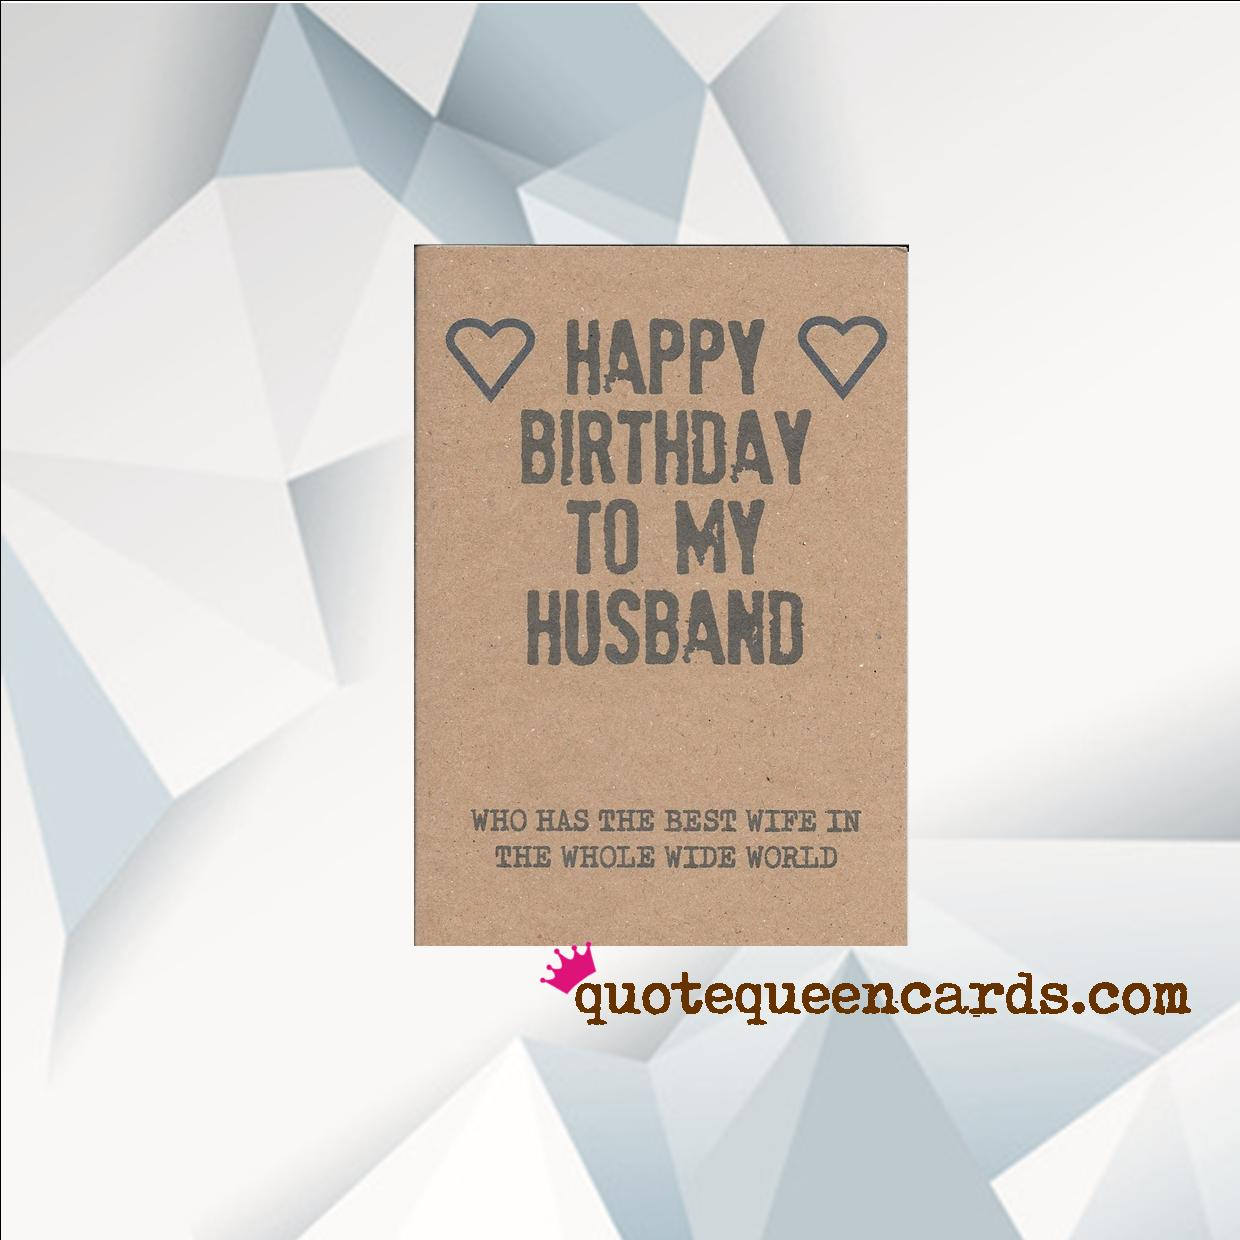 Funny Husband Birthday Card Funny Birthday Card Funny Card